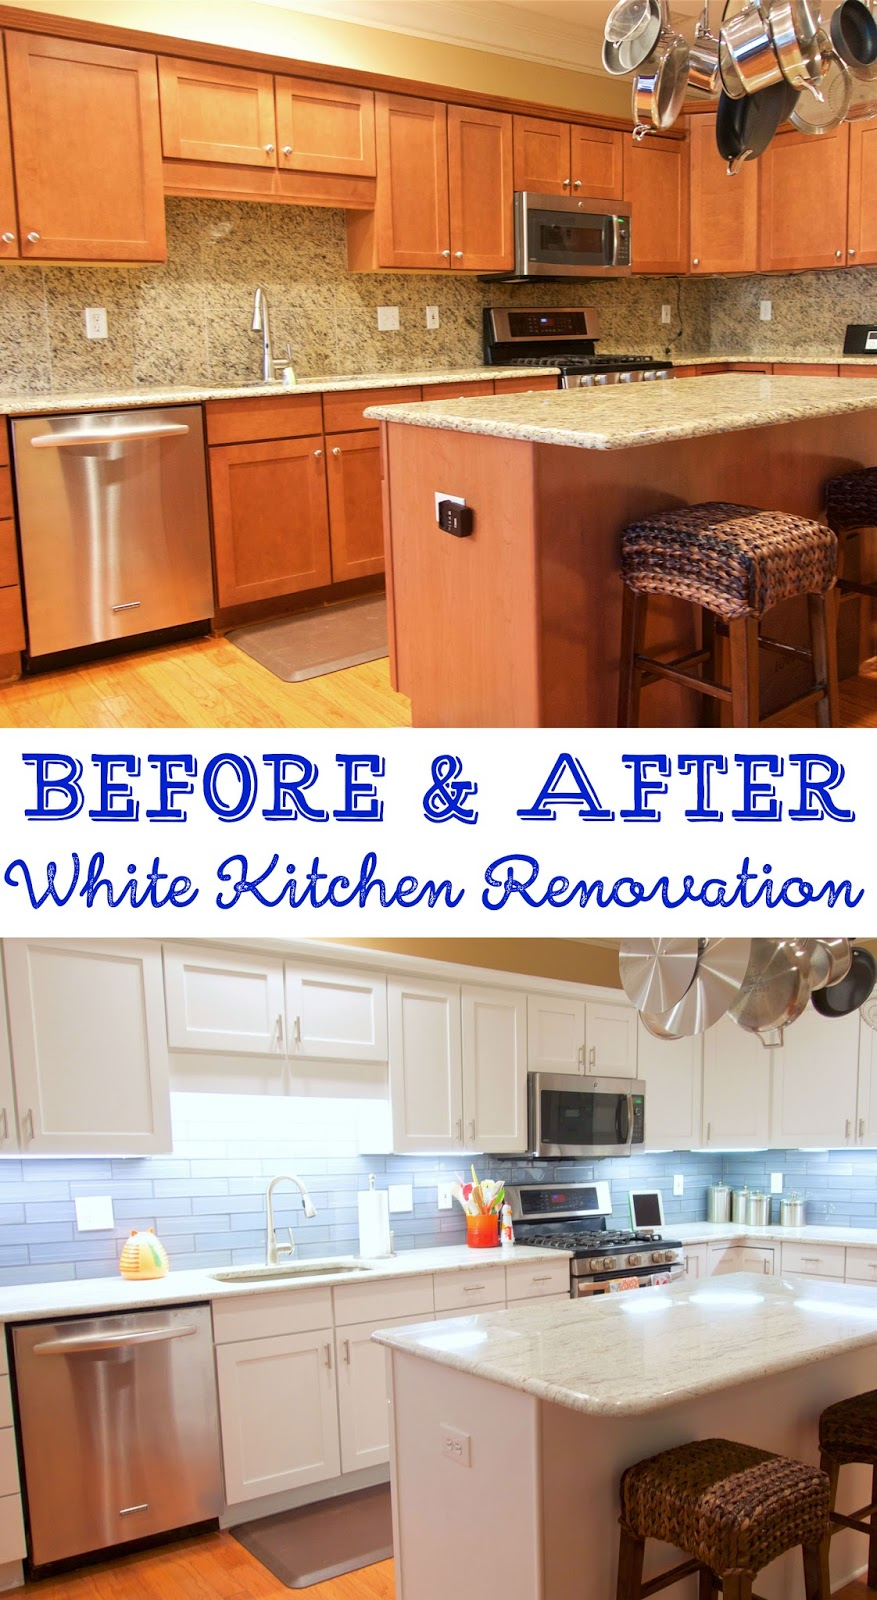 White Kitchen Remodel Before And After Before And After White Kitchen Renovation  Plain Chicken